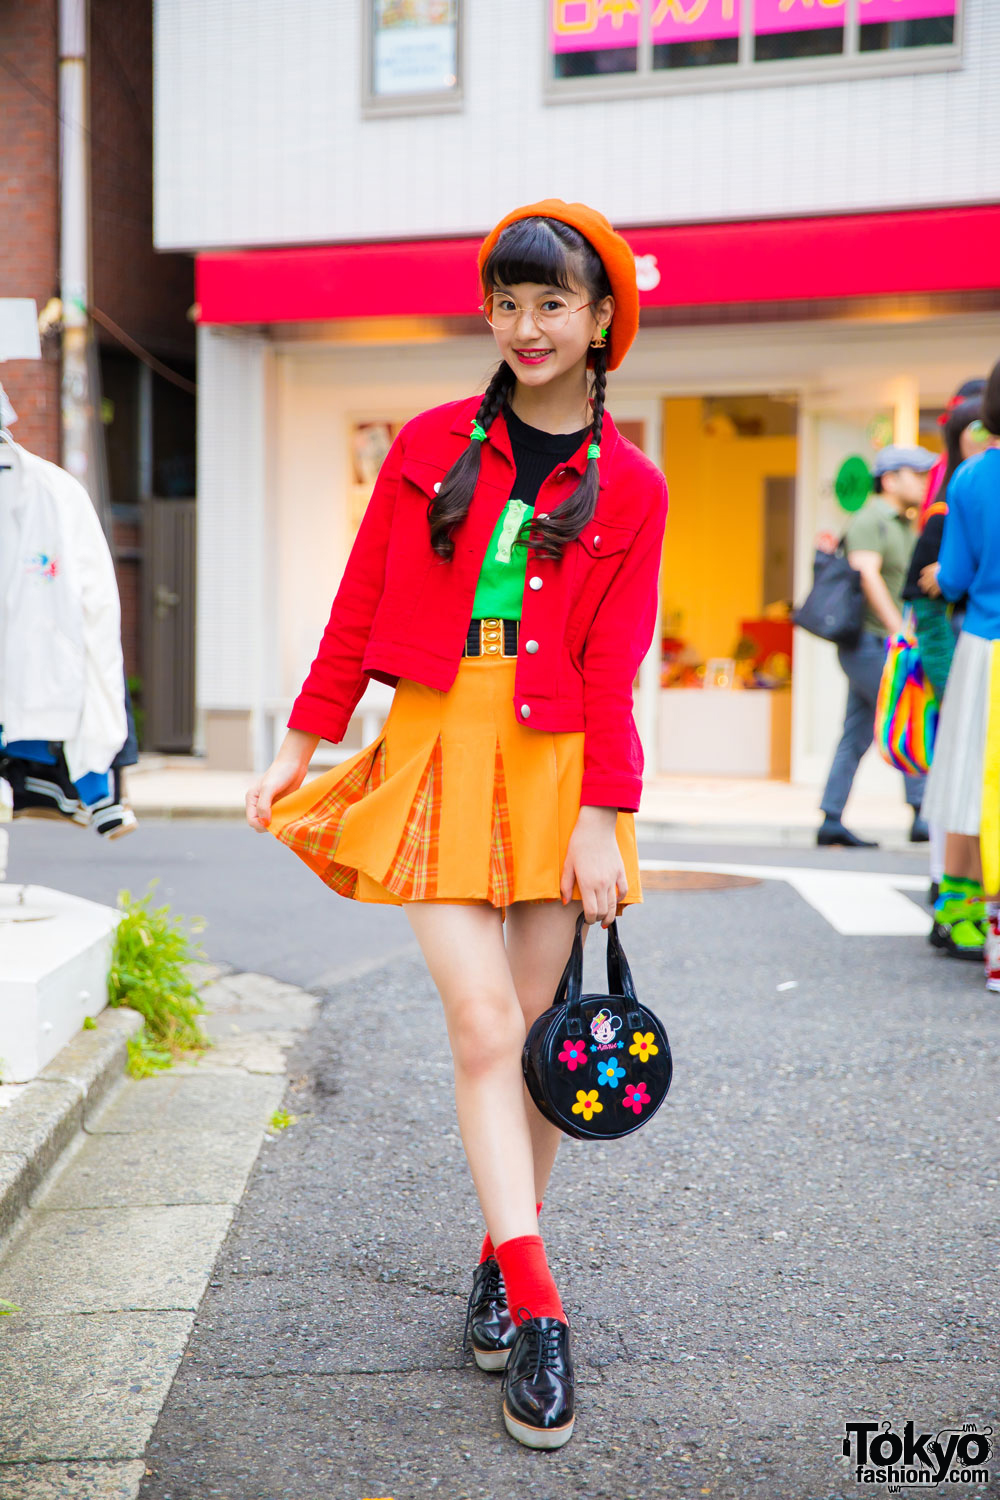 Japanese Model/Actress in Vintage Color-Coordinated Street